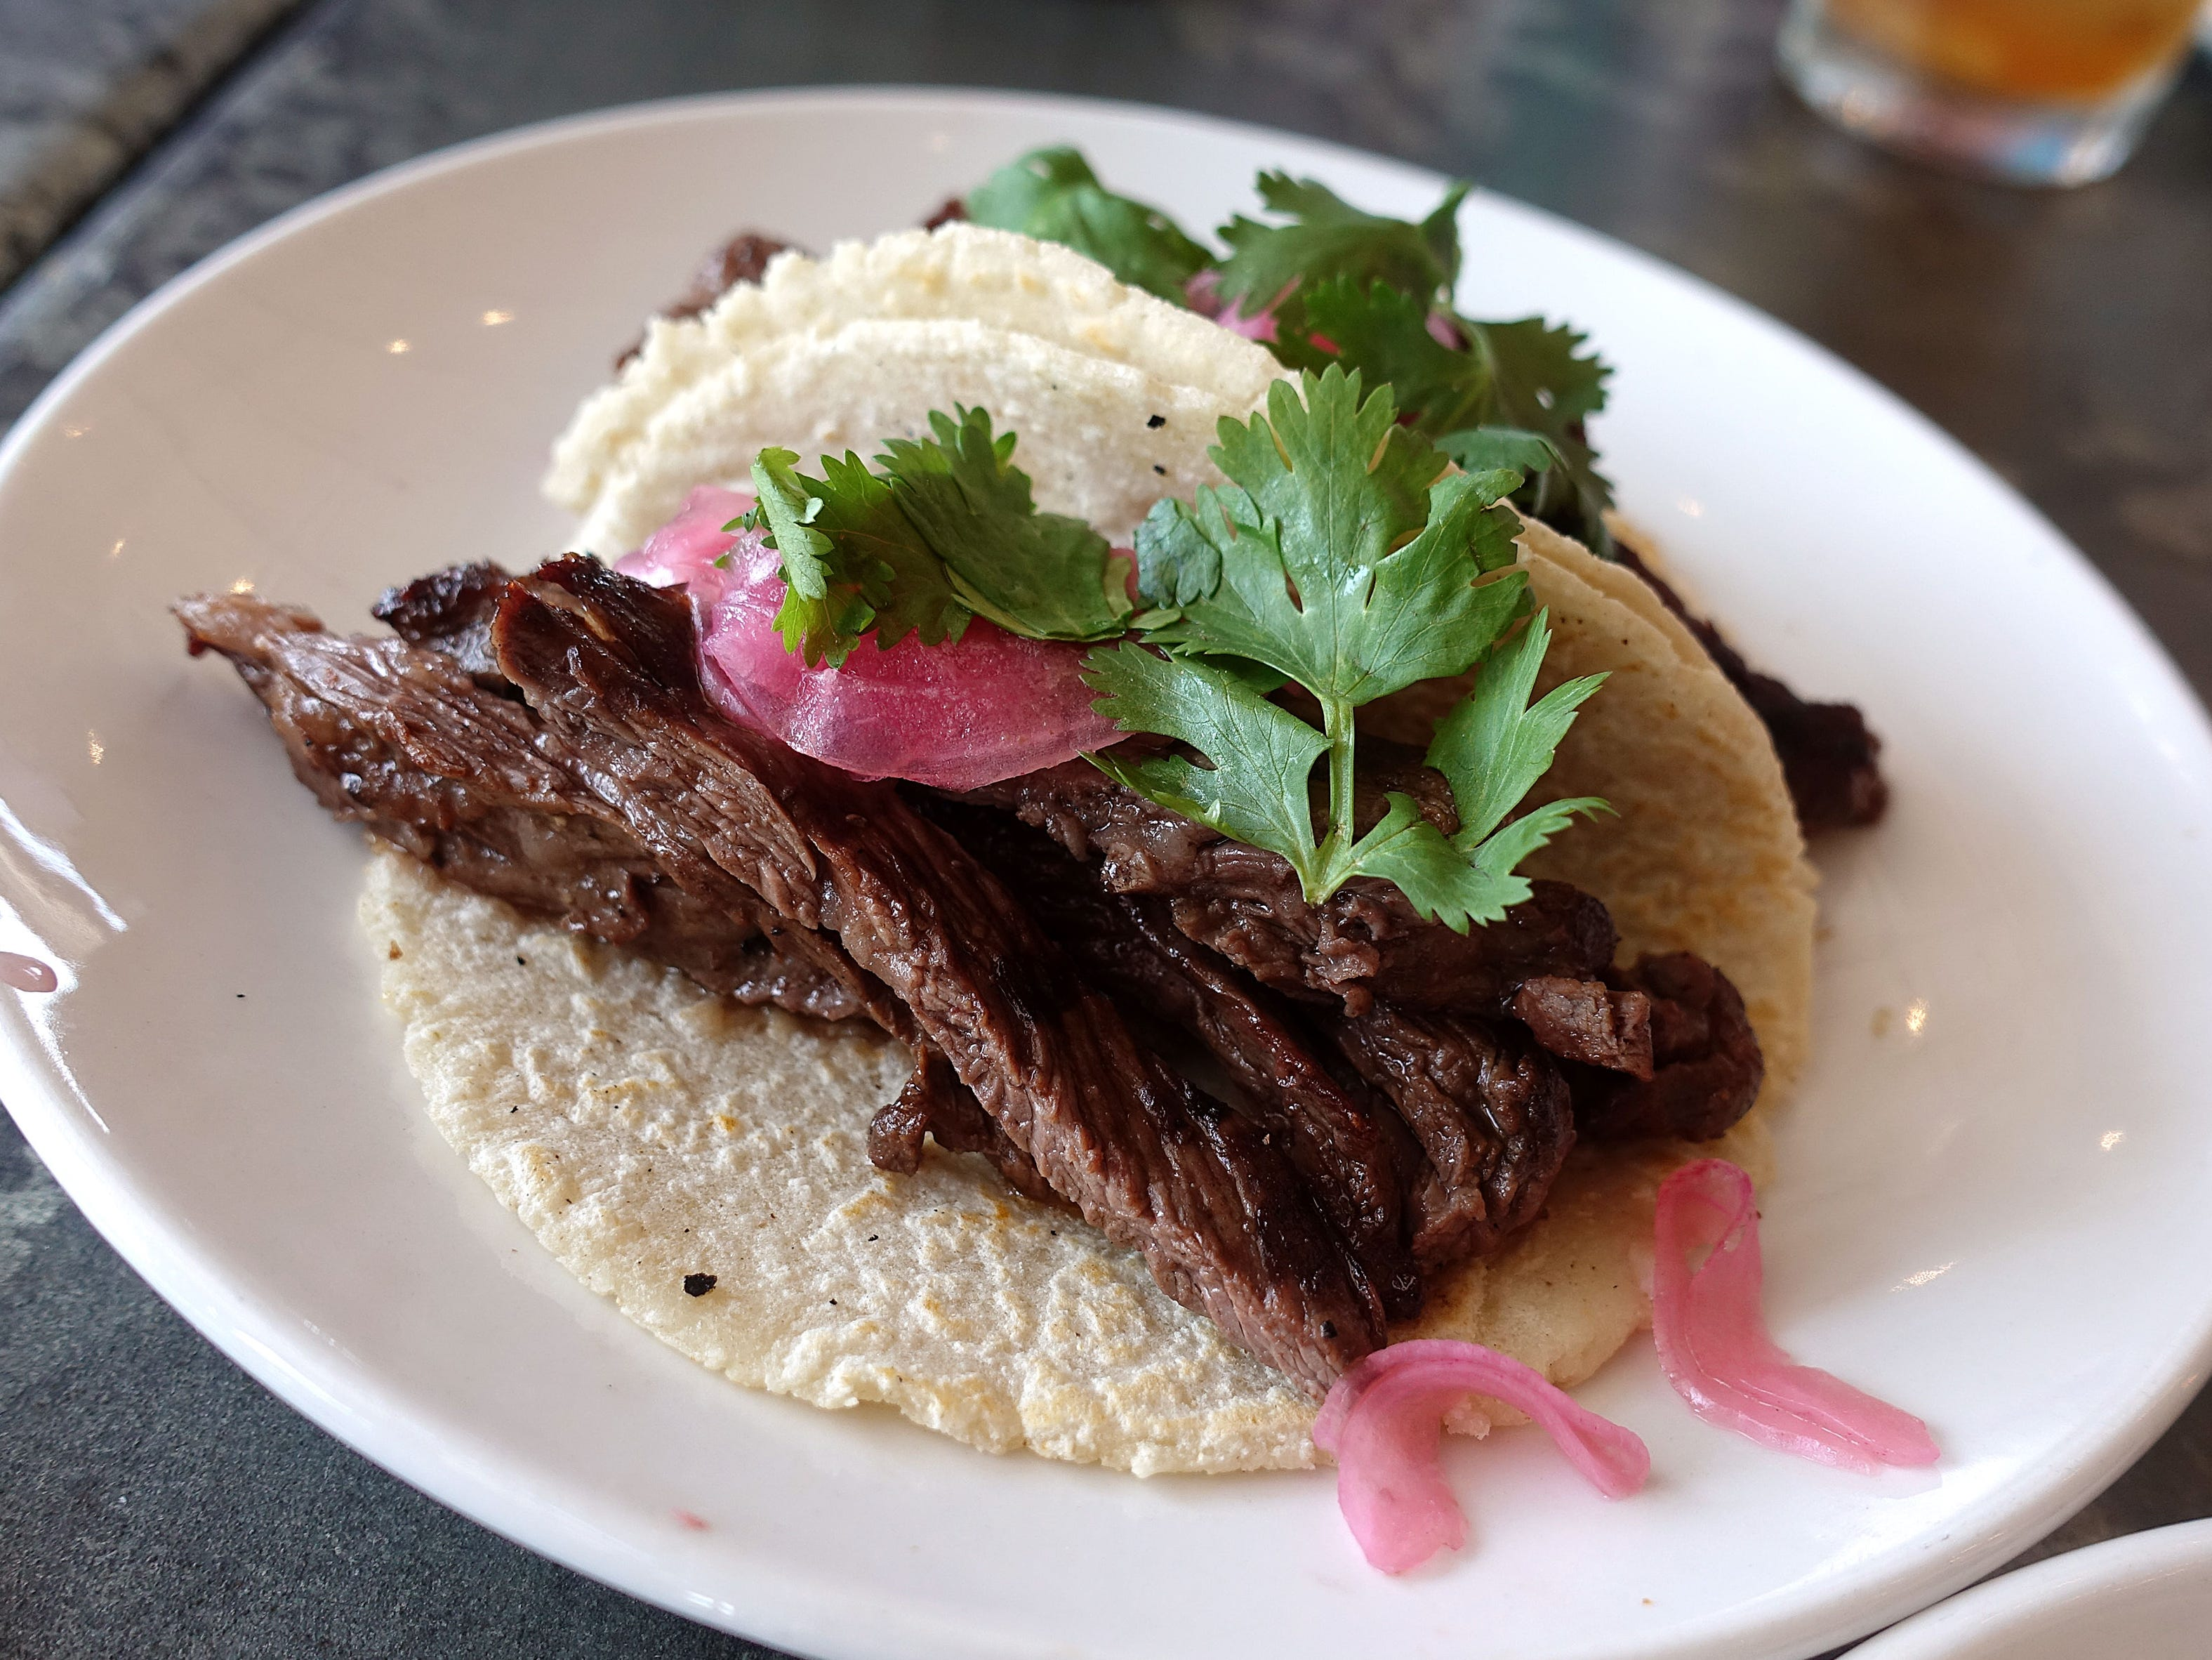 Steak tacos with cilantro and pickled red onion at Roland's Cafe Market Bar.